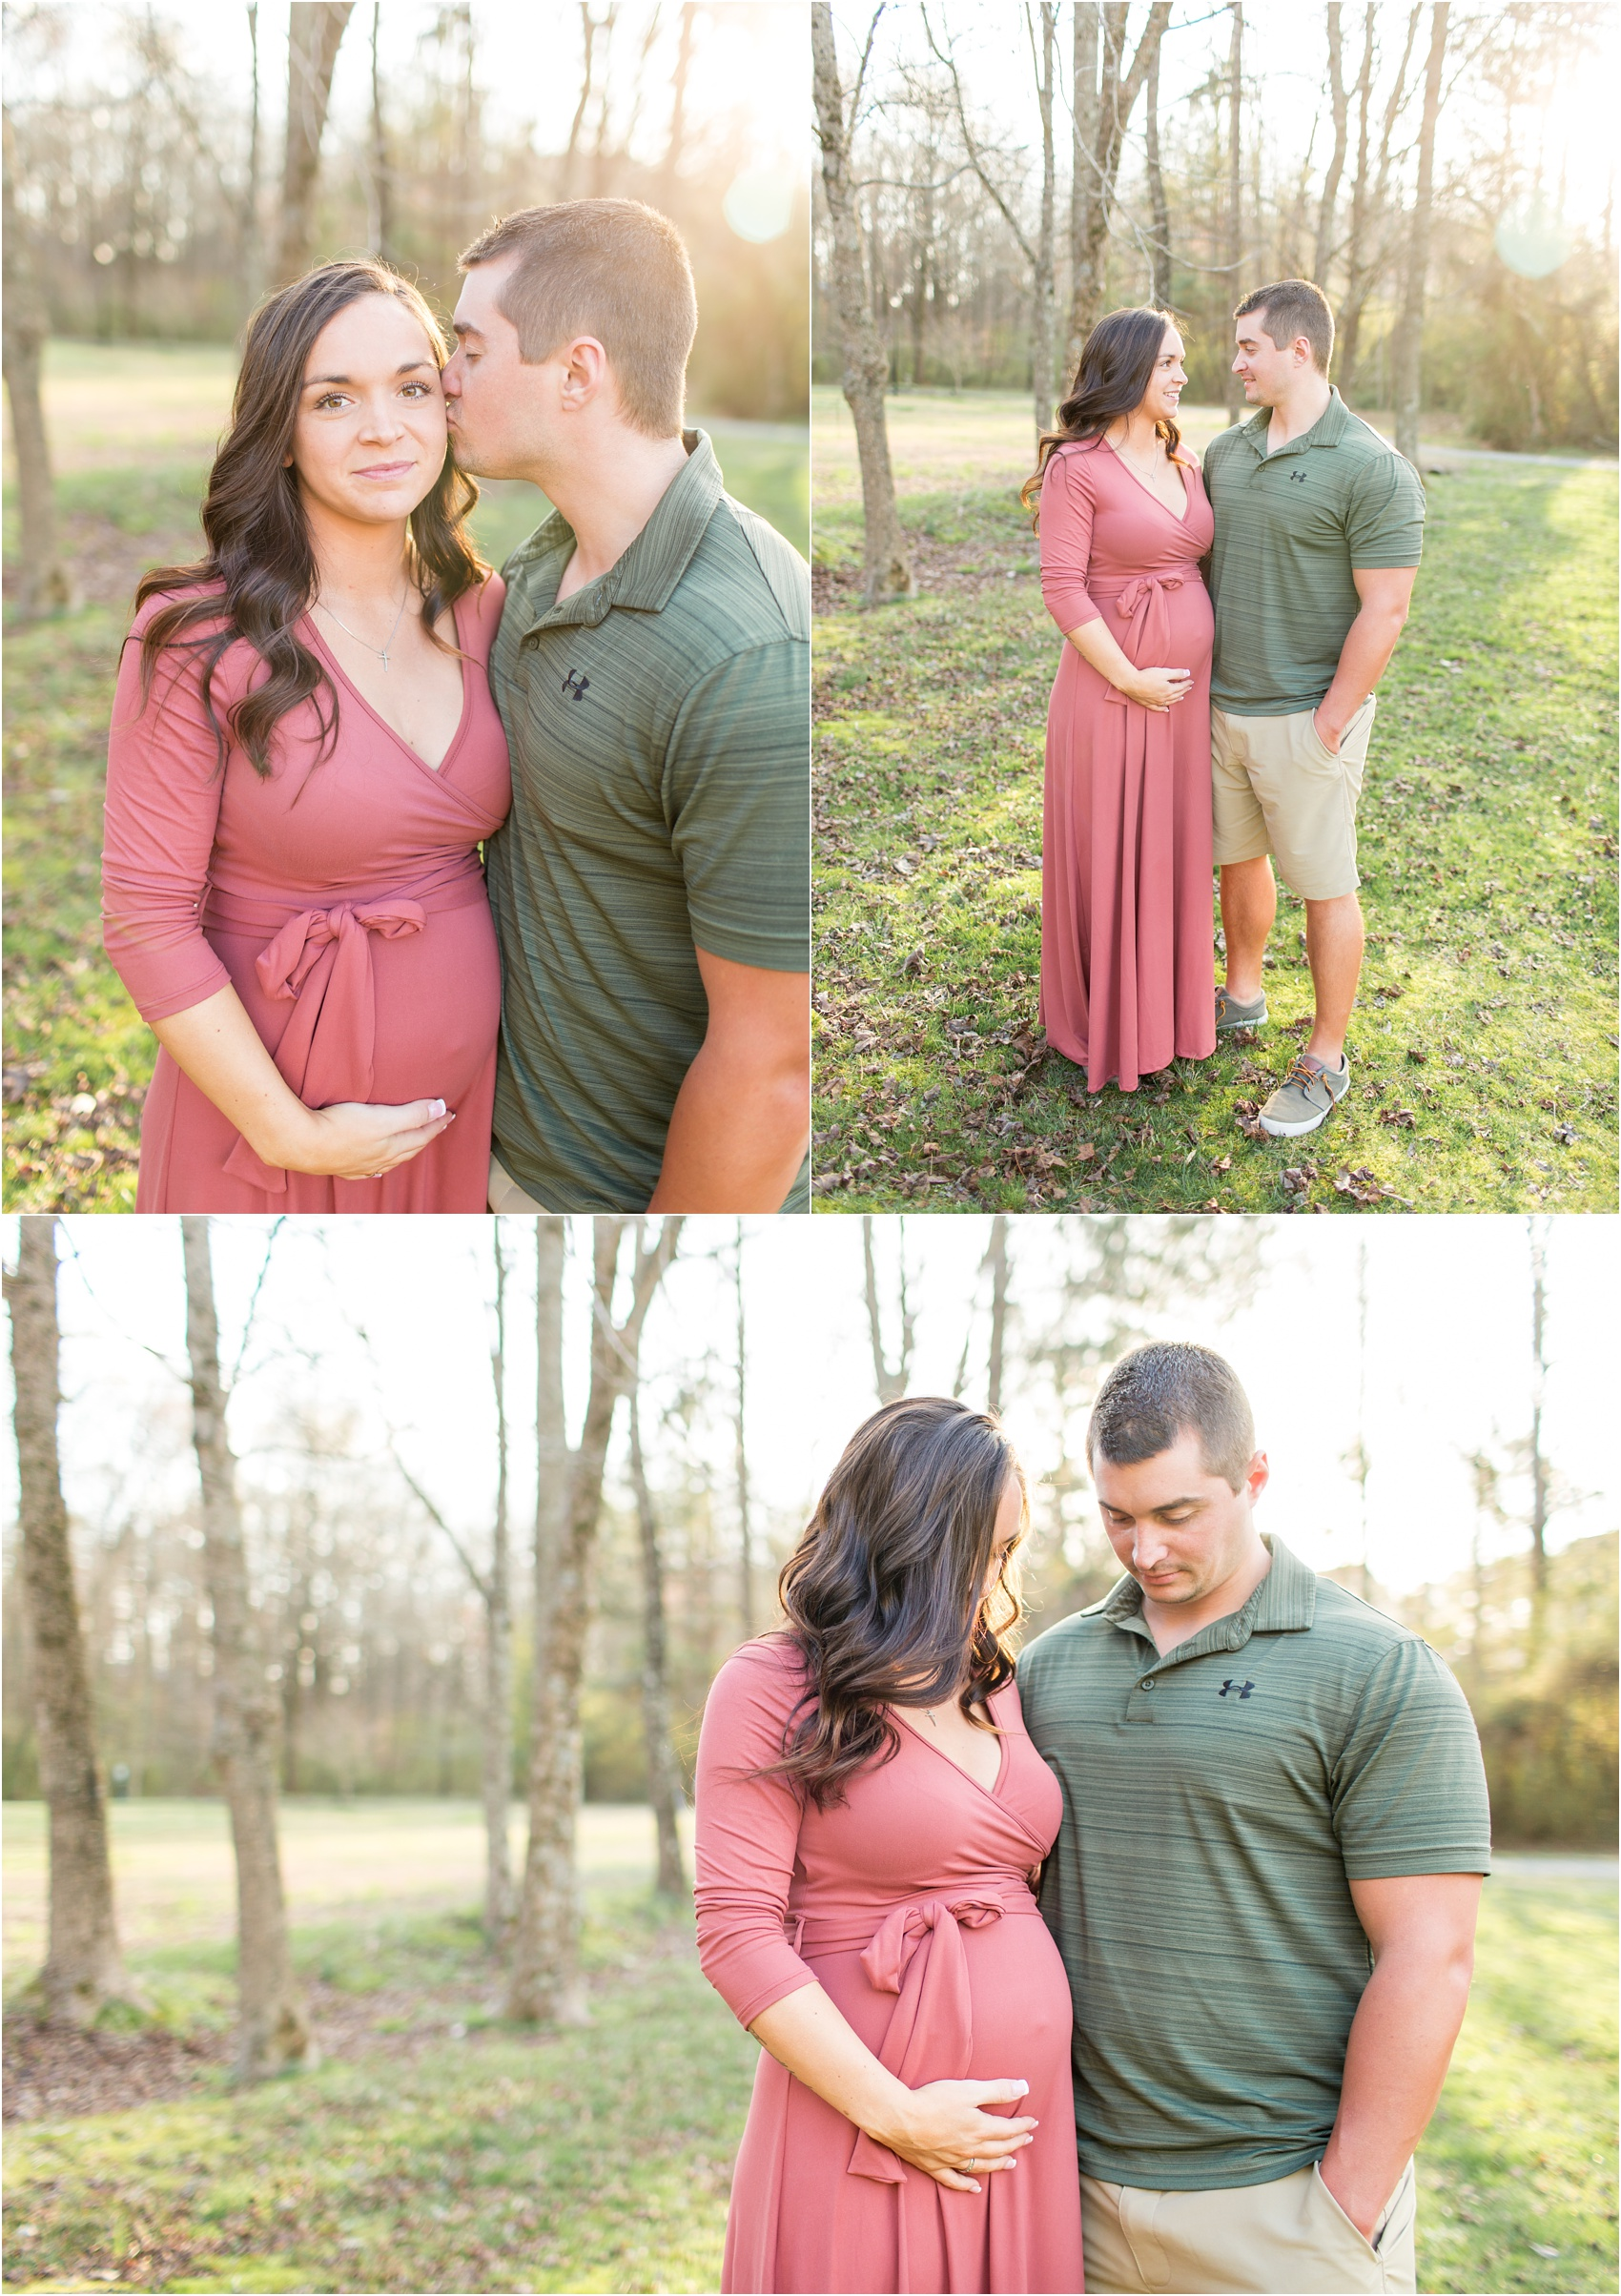 Savannah Eve Photography- Alexis & Josh- Maternity Session-3.jpg